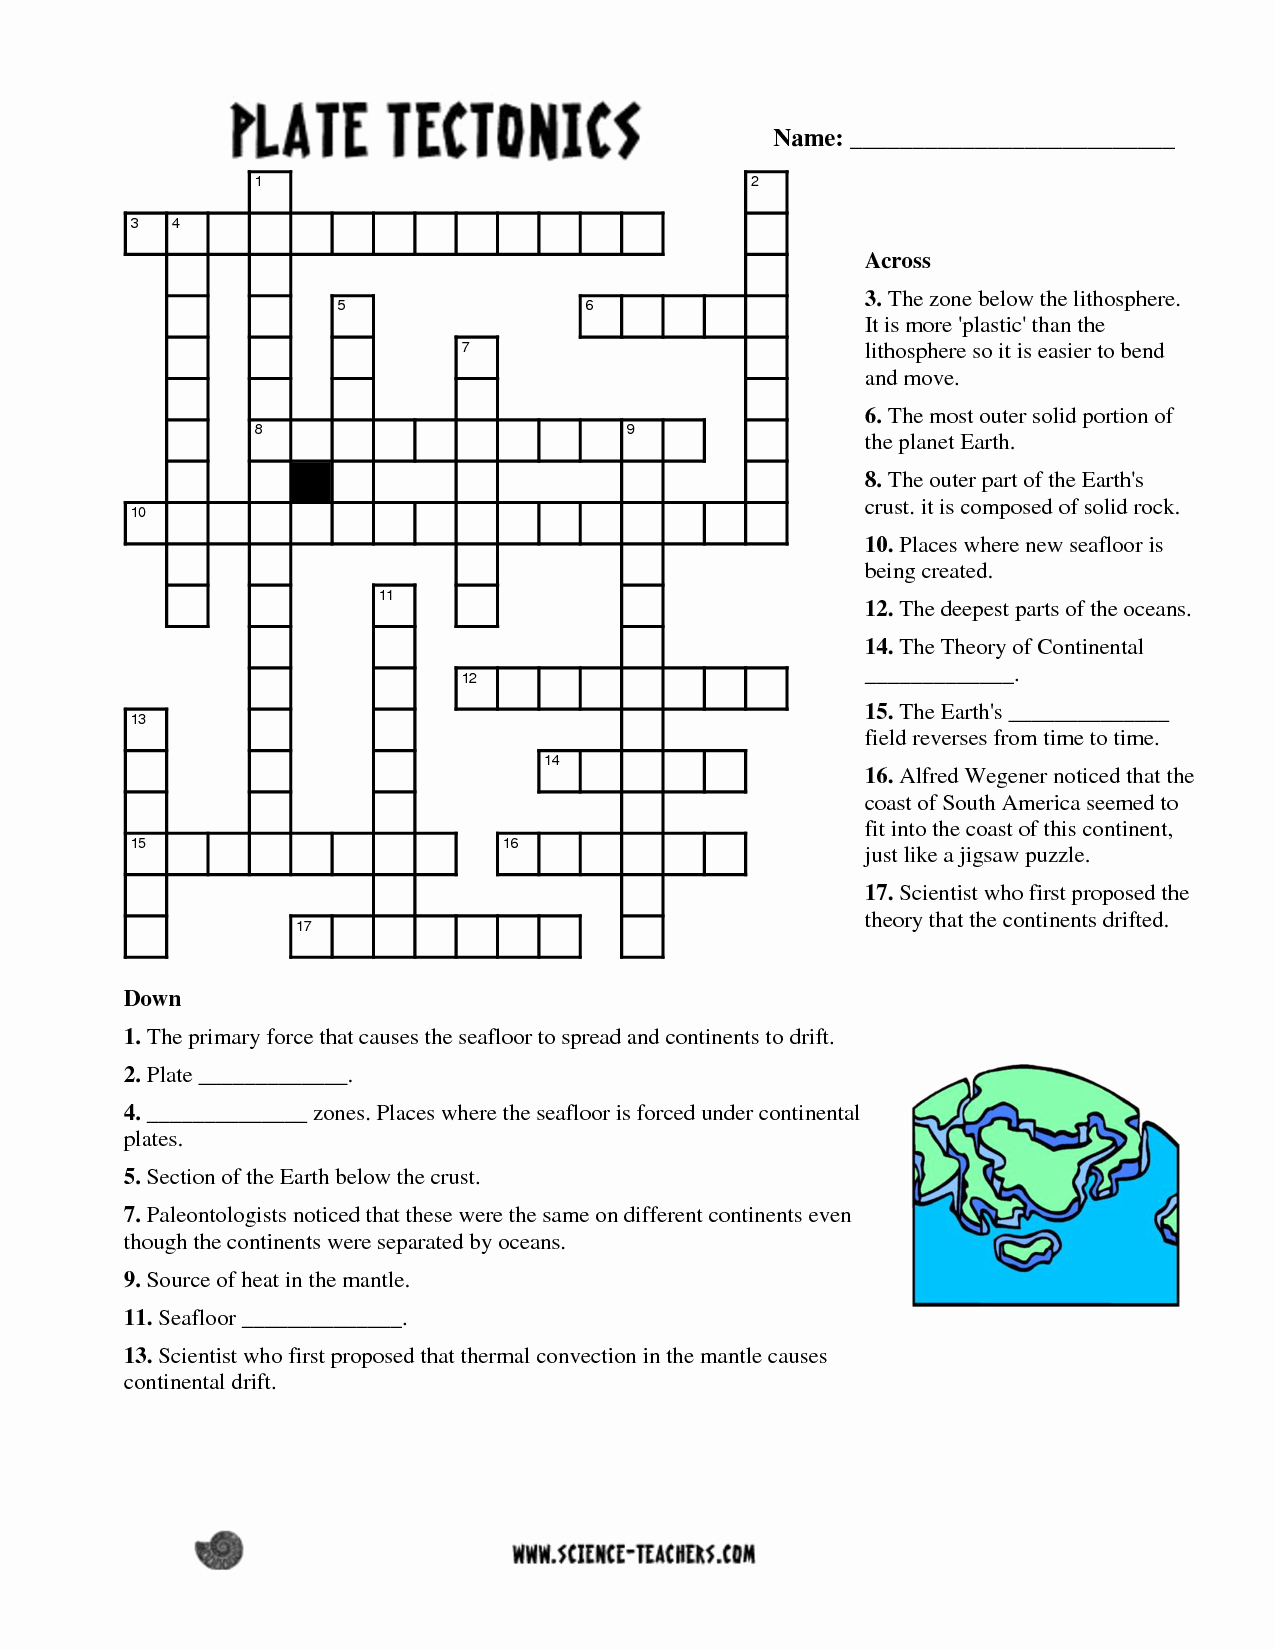 Plate Tectonics Worksheet Answers New Planets Crossword Puzzle Worksheet Pics About Space